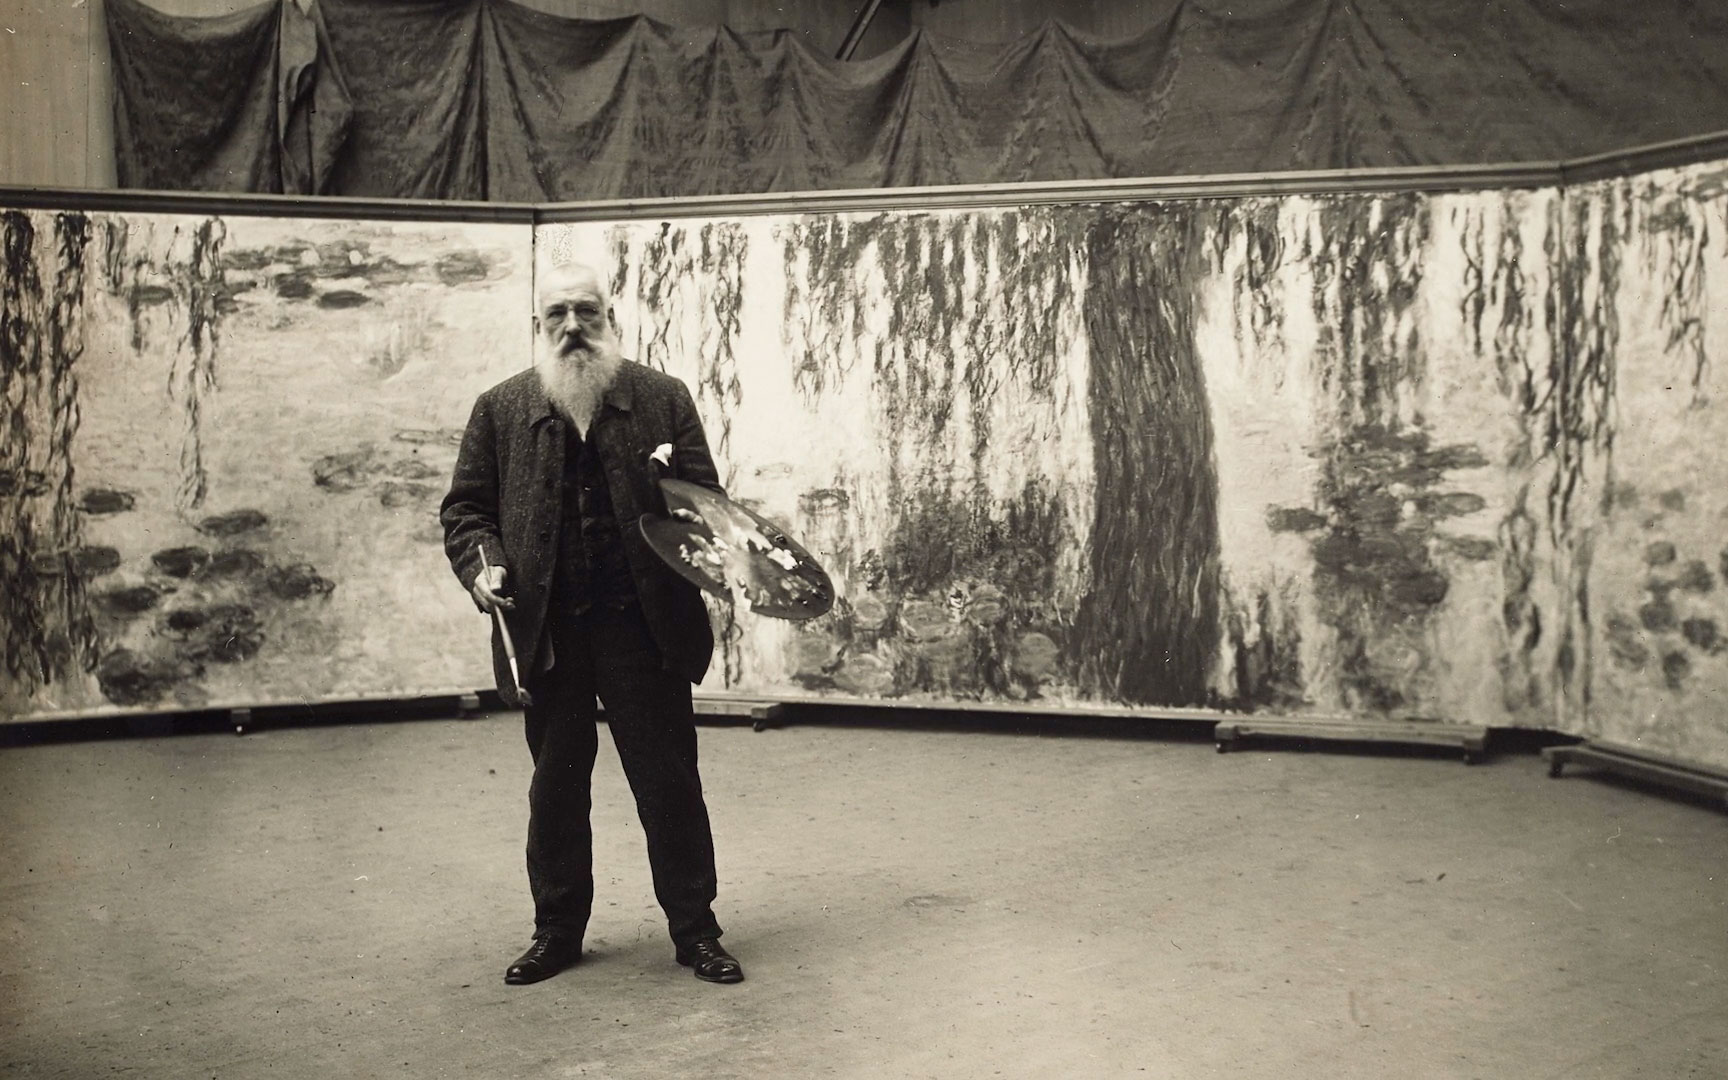 The art that Monet lived with